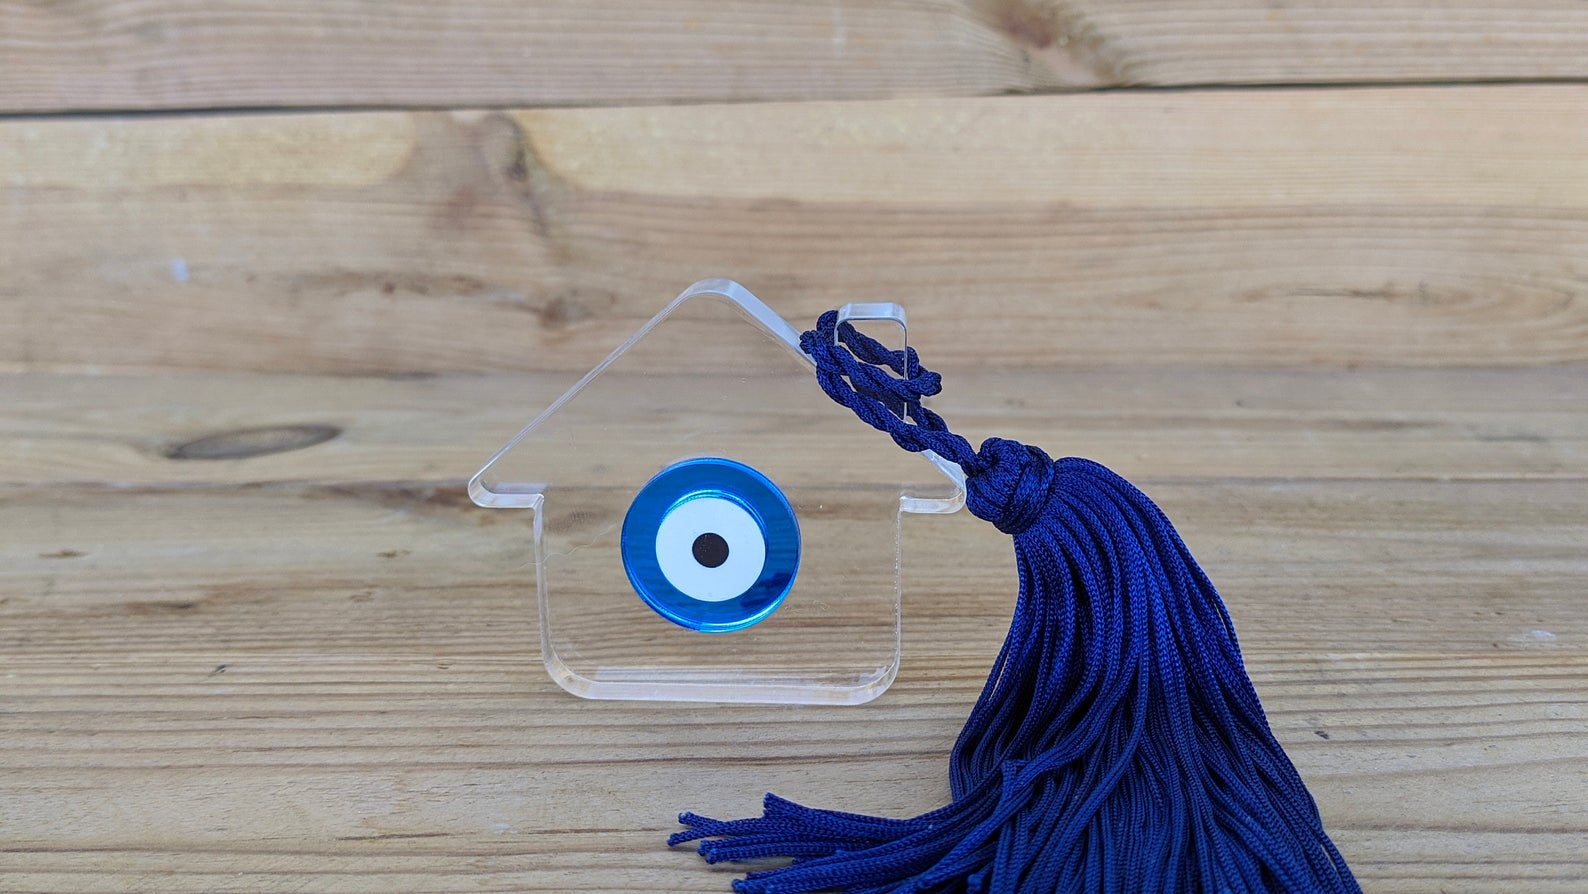 EVIL EYE HOUSE ORNAMENT